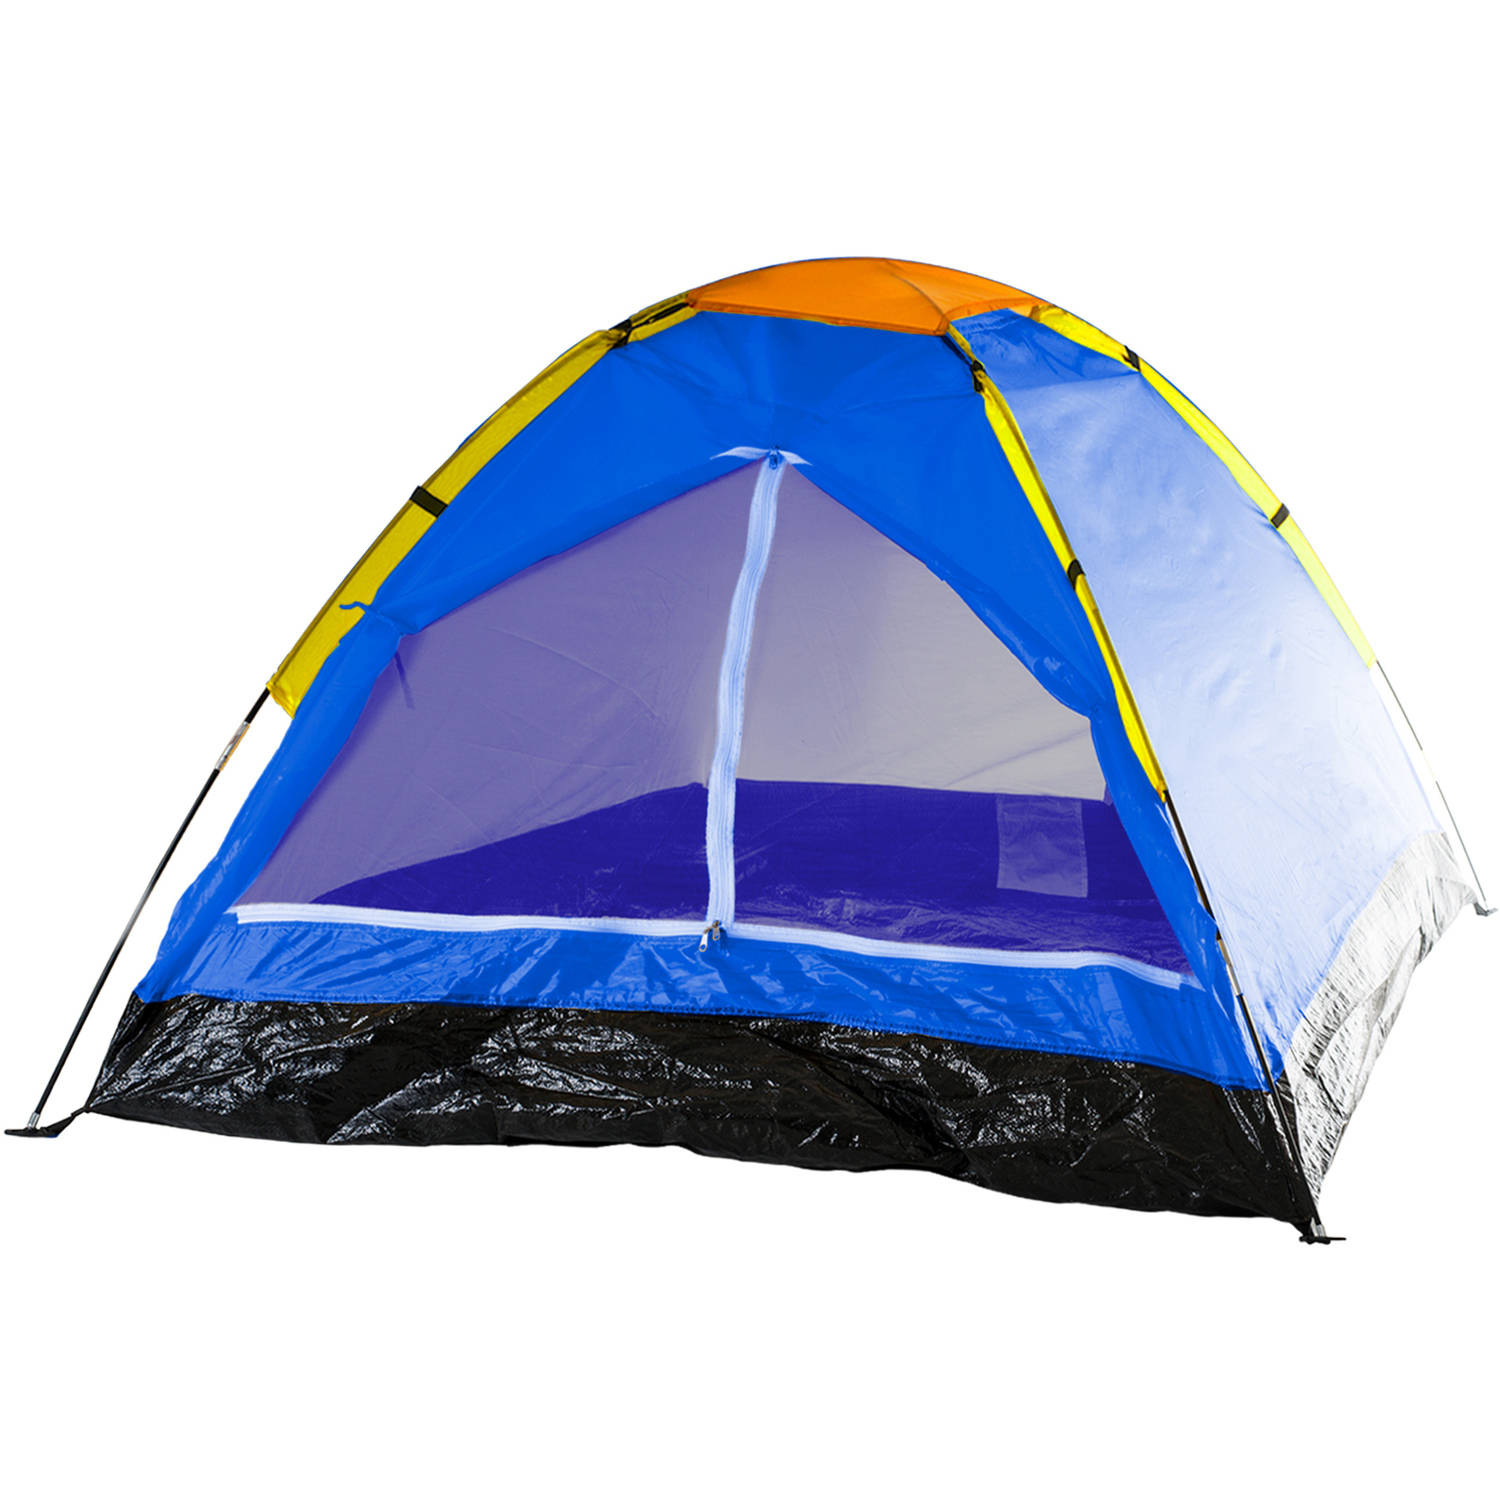 Tents at Outdoor Realm